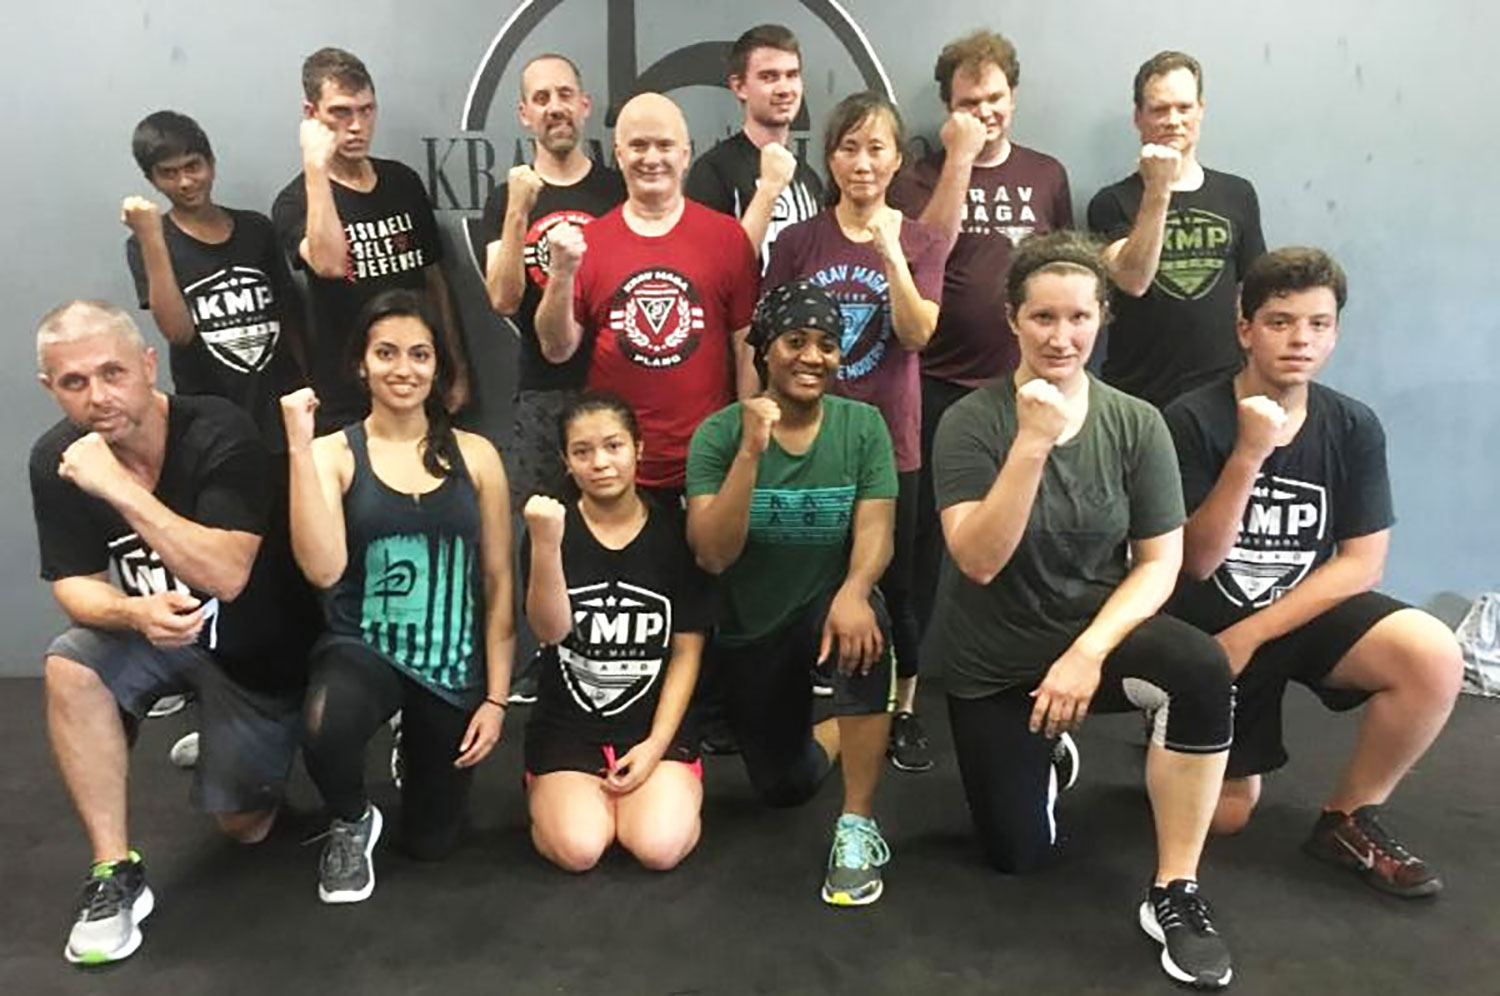 Priyanka's krav maga class after their level one test // courtesy the author